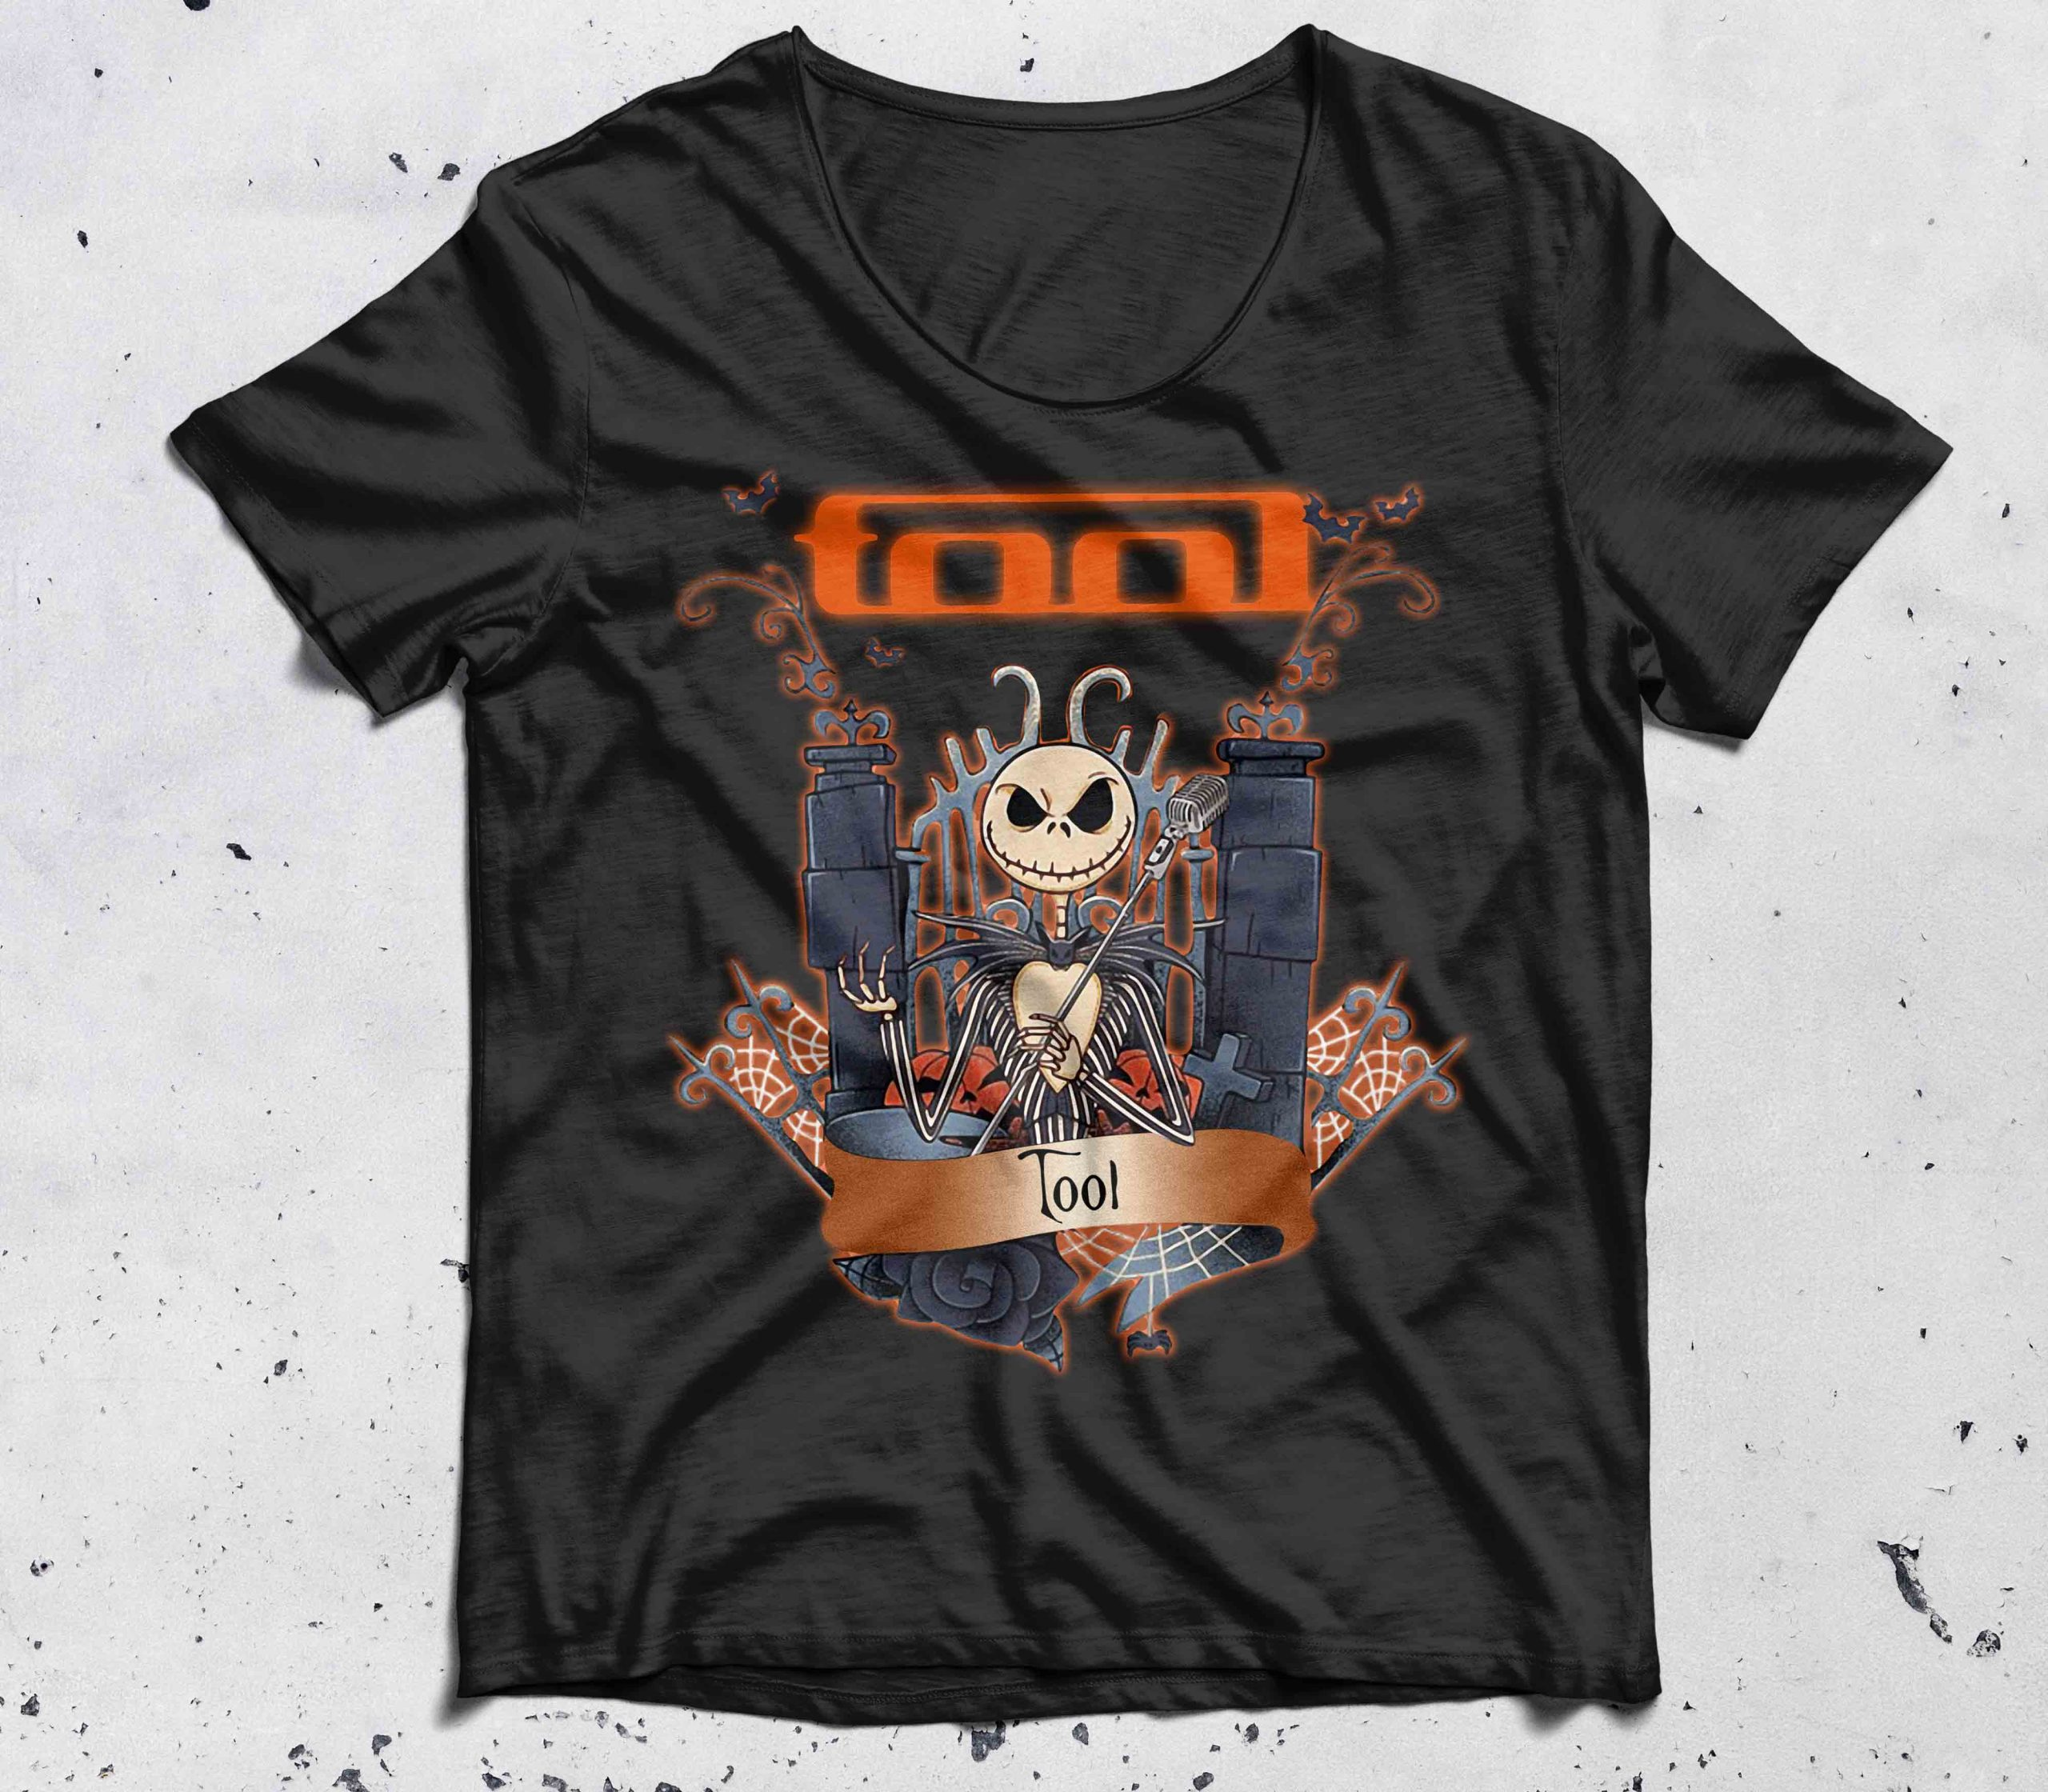 Halloween Jack Skellington Tool shirt